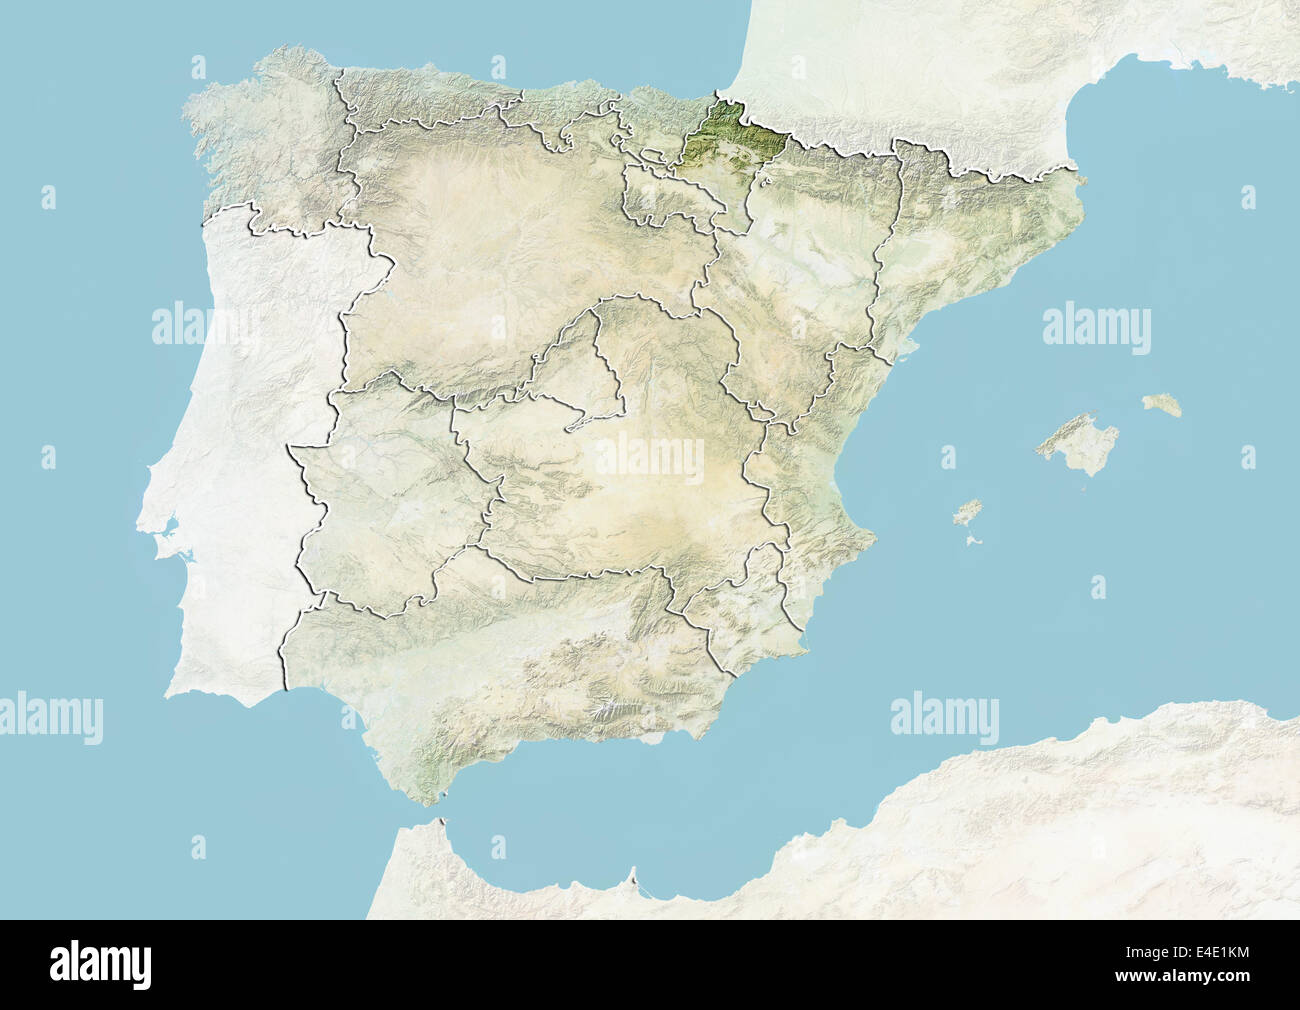 Spain and the Region of Navarre Relief Map Stock Photo 71608760